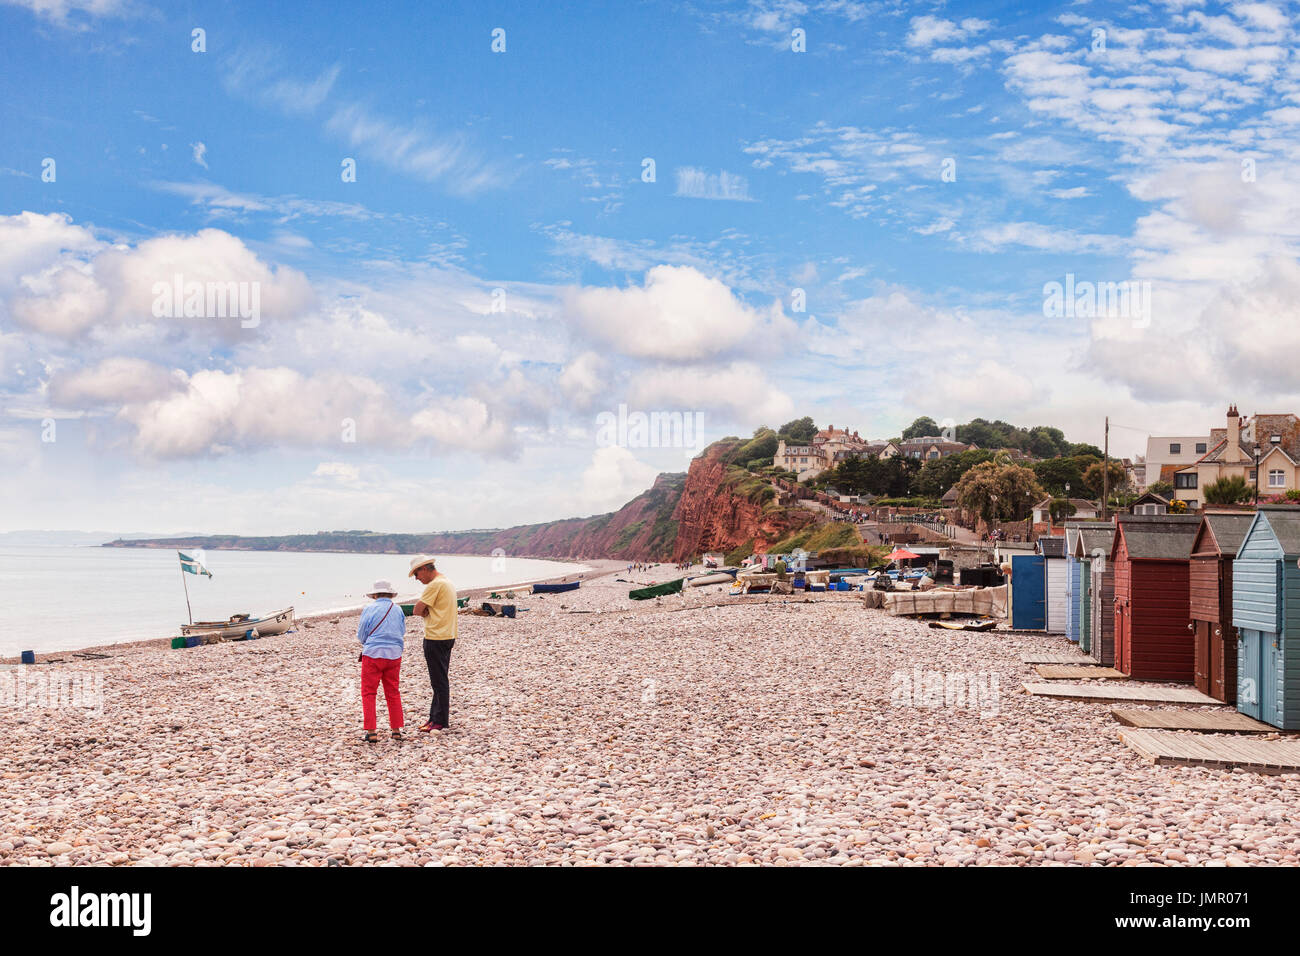 26 June 2017: Budleigh Salterton, East Devon, England, UK - Senior couple on the pebble beach at Budleigh Salterton, on a bright summer day with blue  - Stock Image